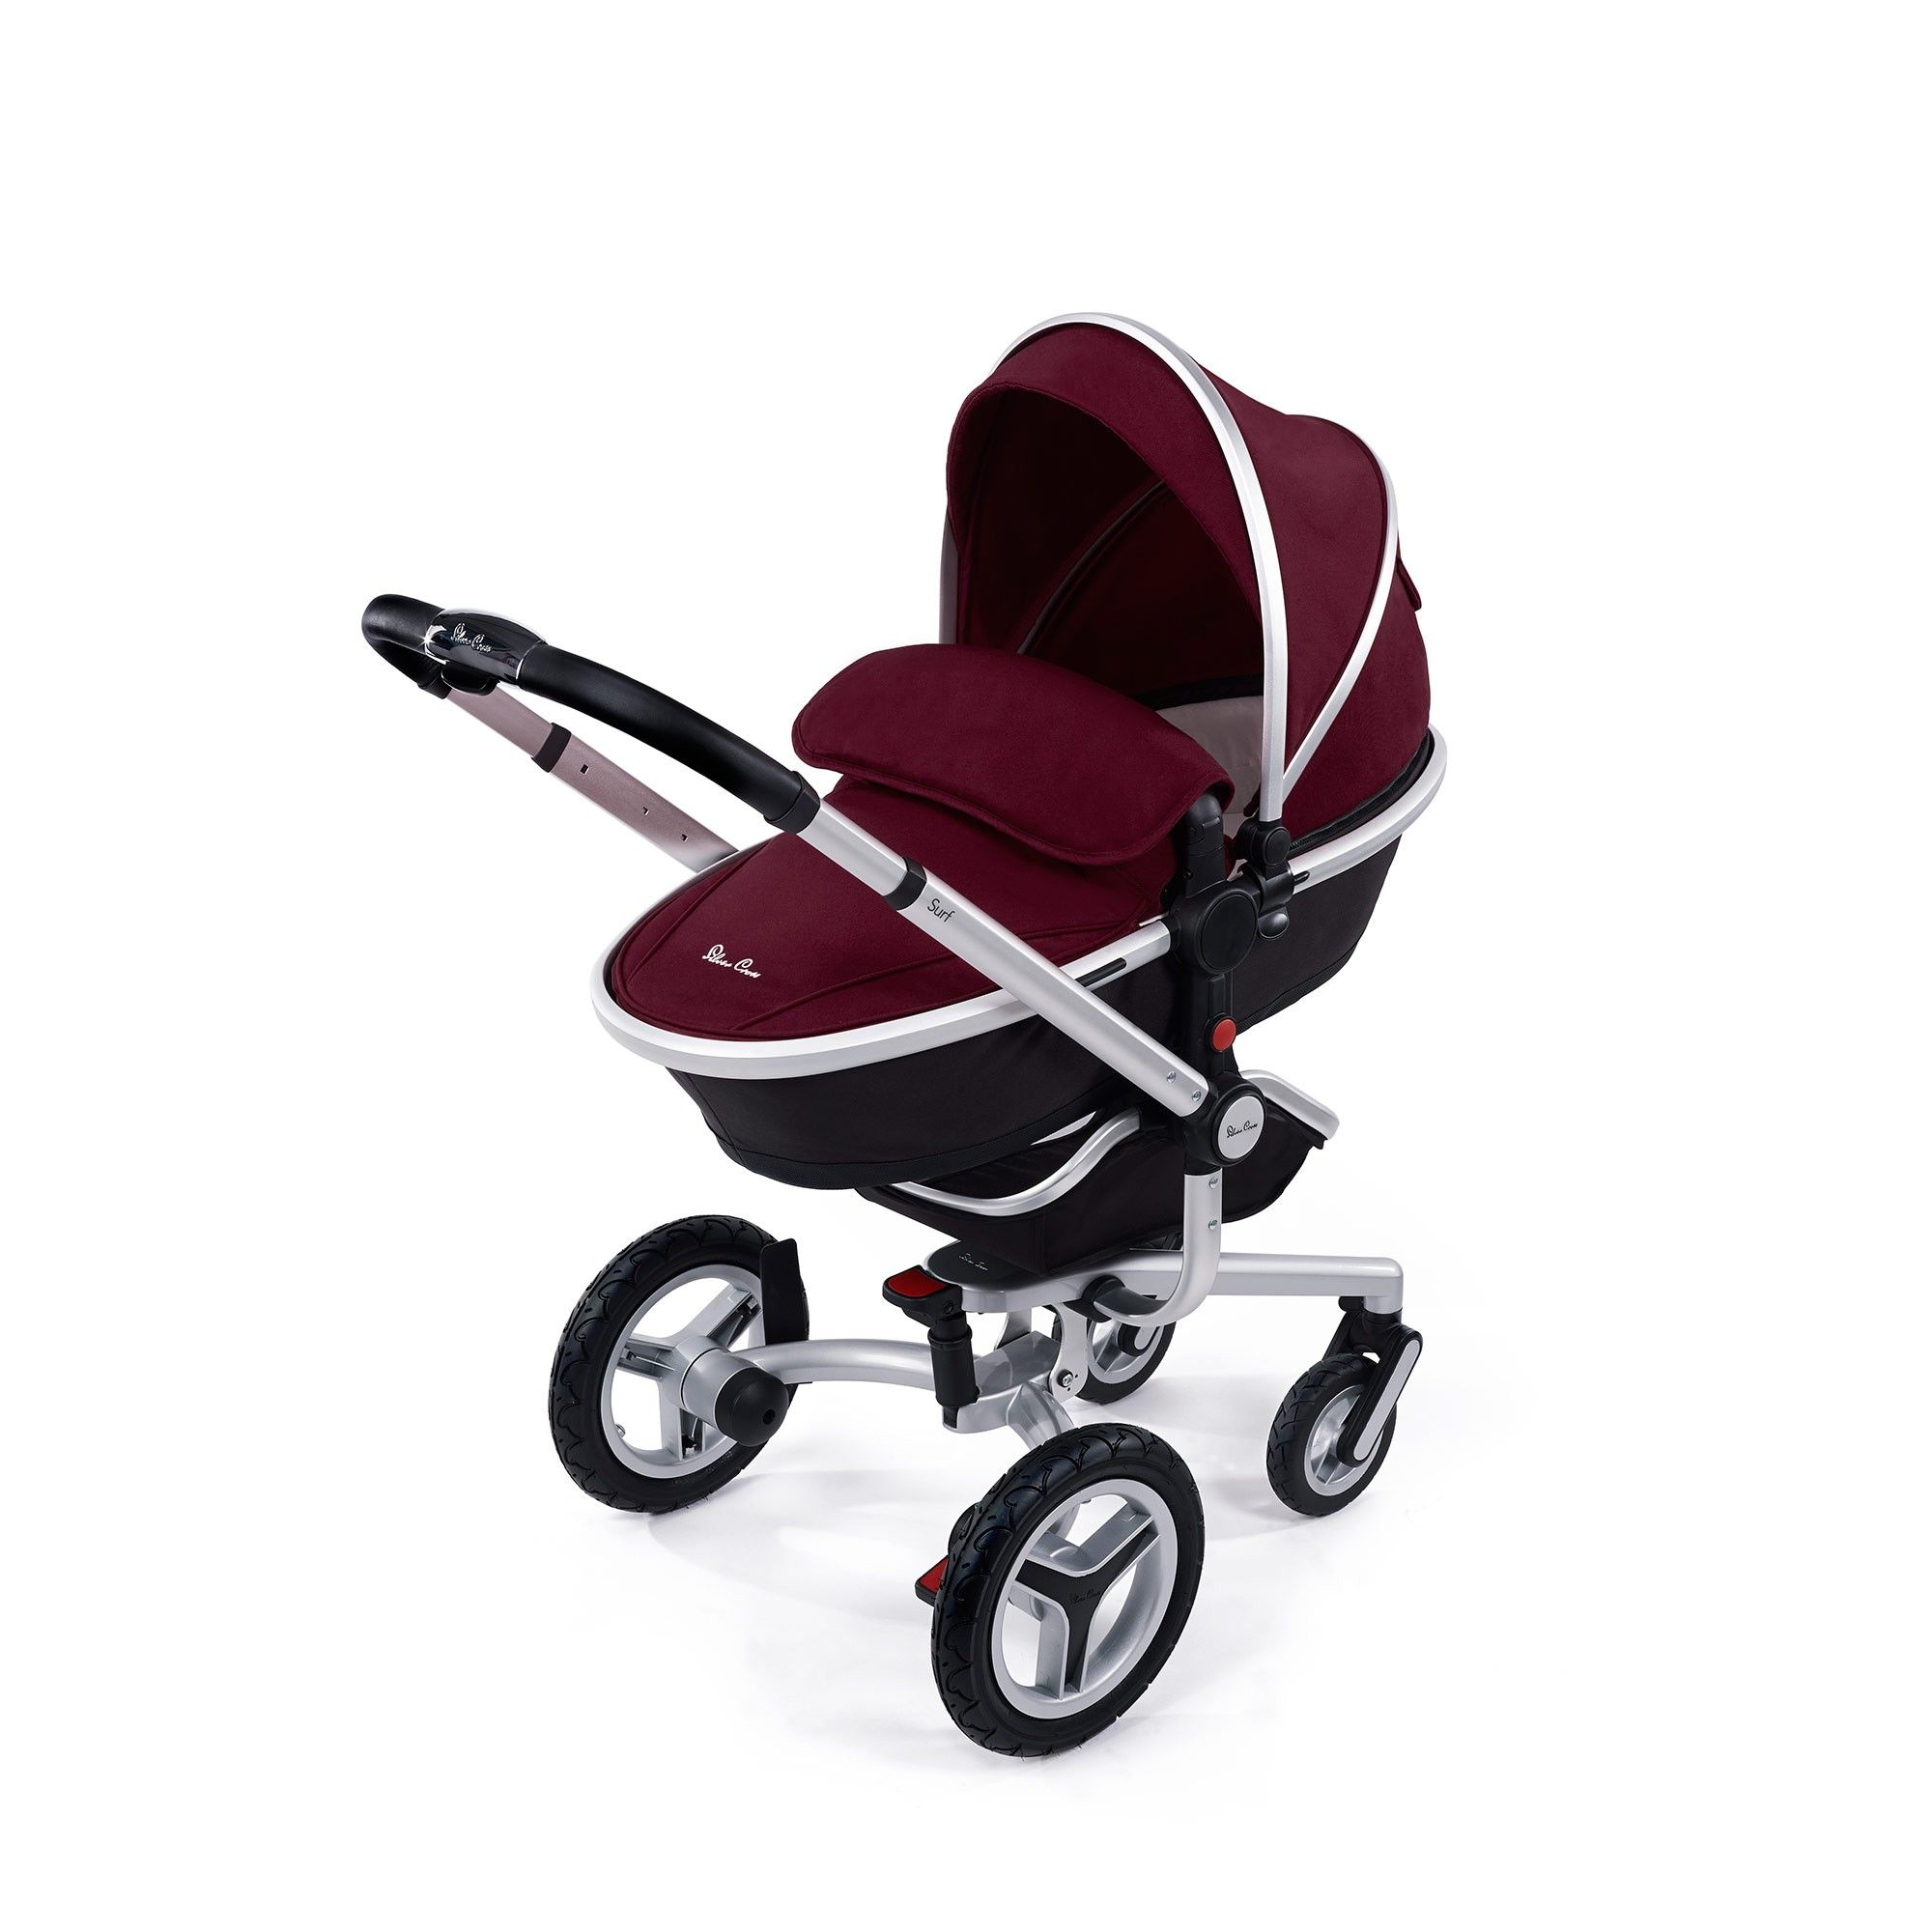 The Silver Cross Surf 2 builds on the already impressive Surf pushchair and adds a